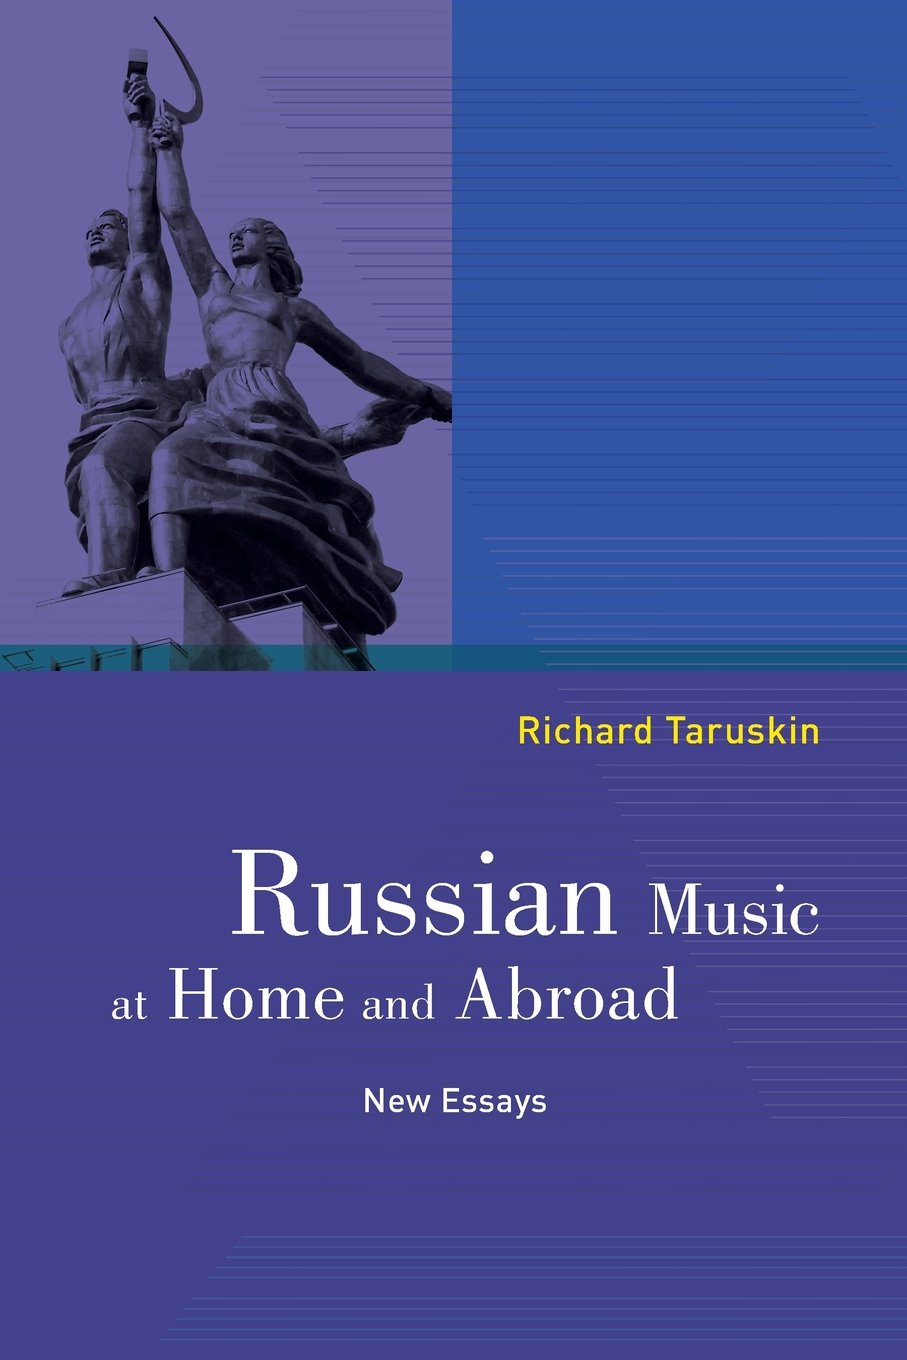 russian music at home and abroad new essays richard taruskin russian music at home and abroad new essays richard taruskin 9780520288096 com books